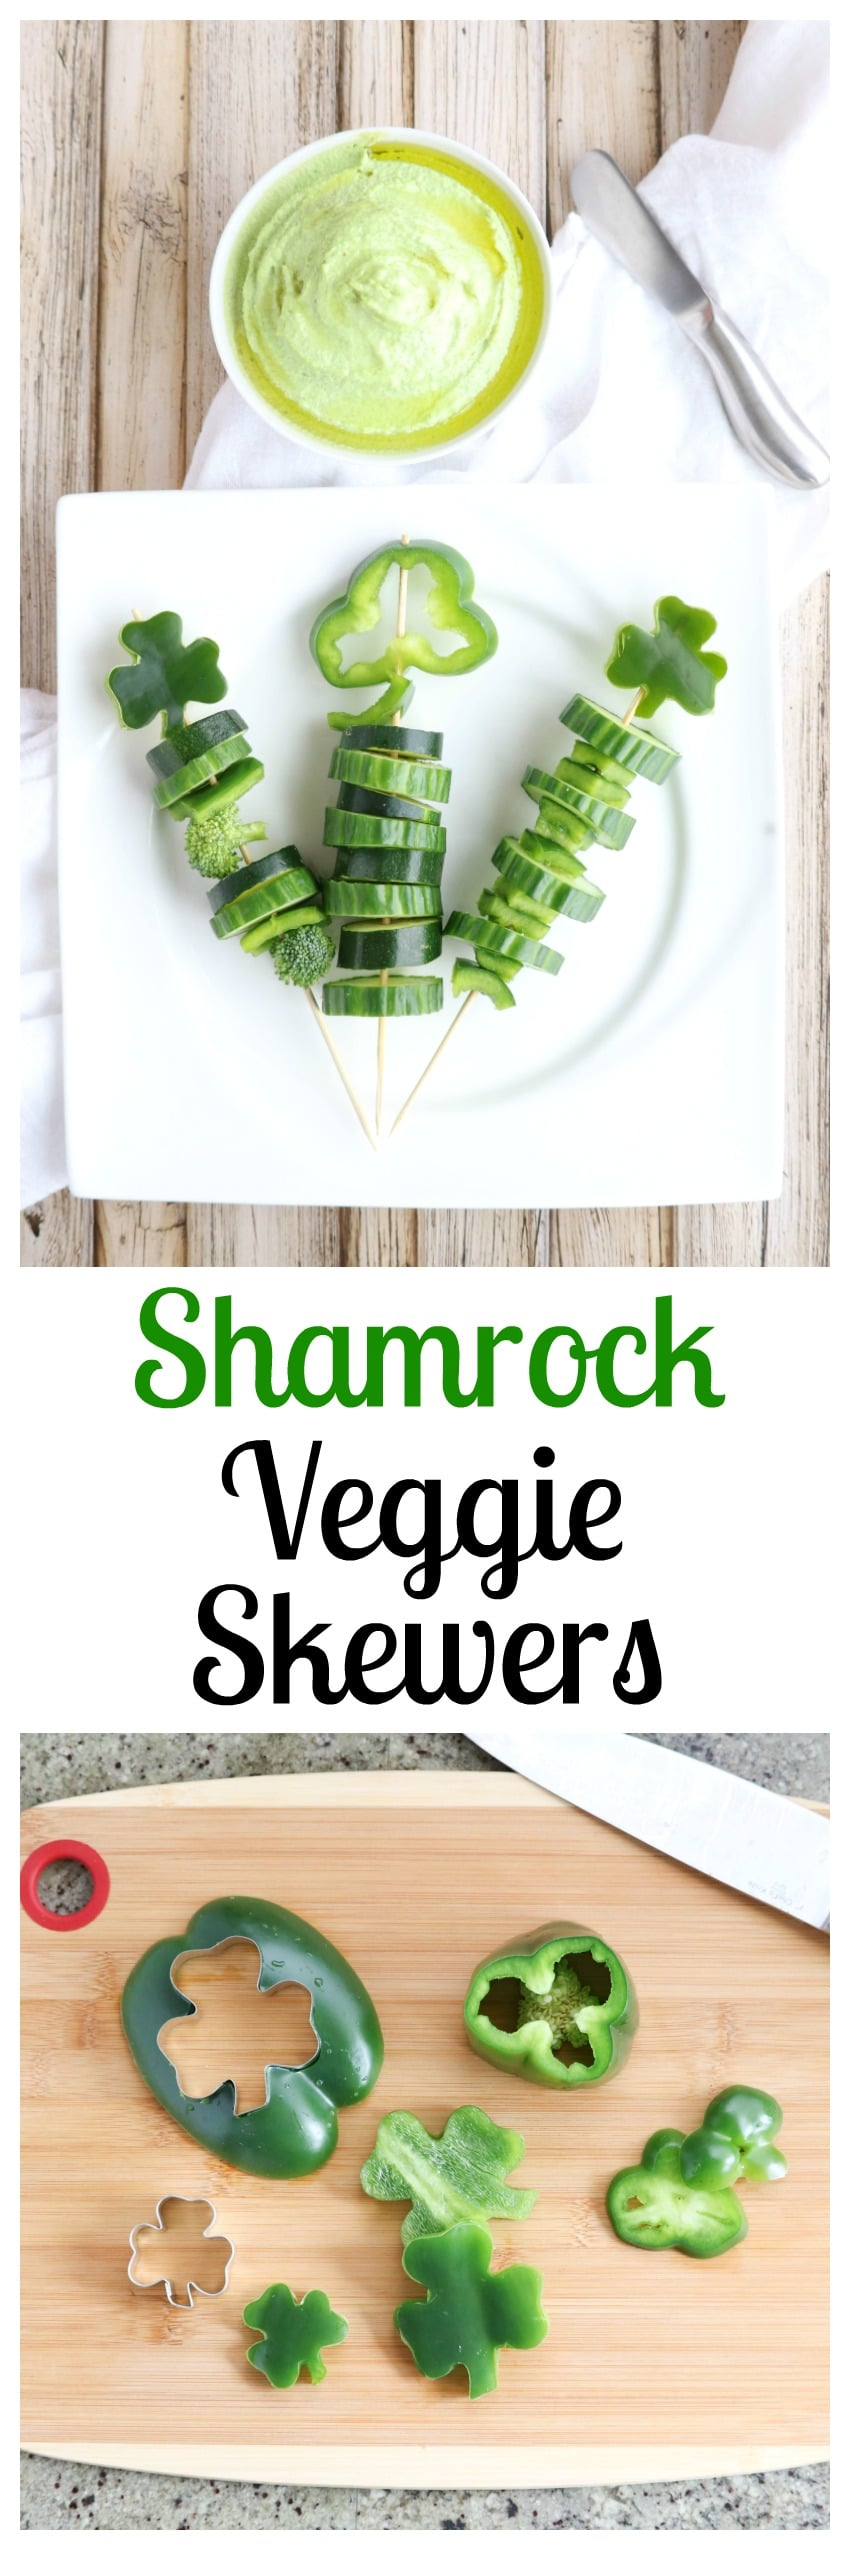 These easy Shamrock Veggie Skewers are a perfect St. Patrick's Day appetizer for parties - and a fun, healthy after-school snack! | www.TwoHealthyKitchens.com